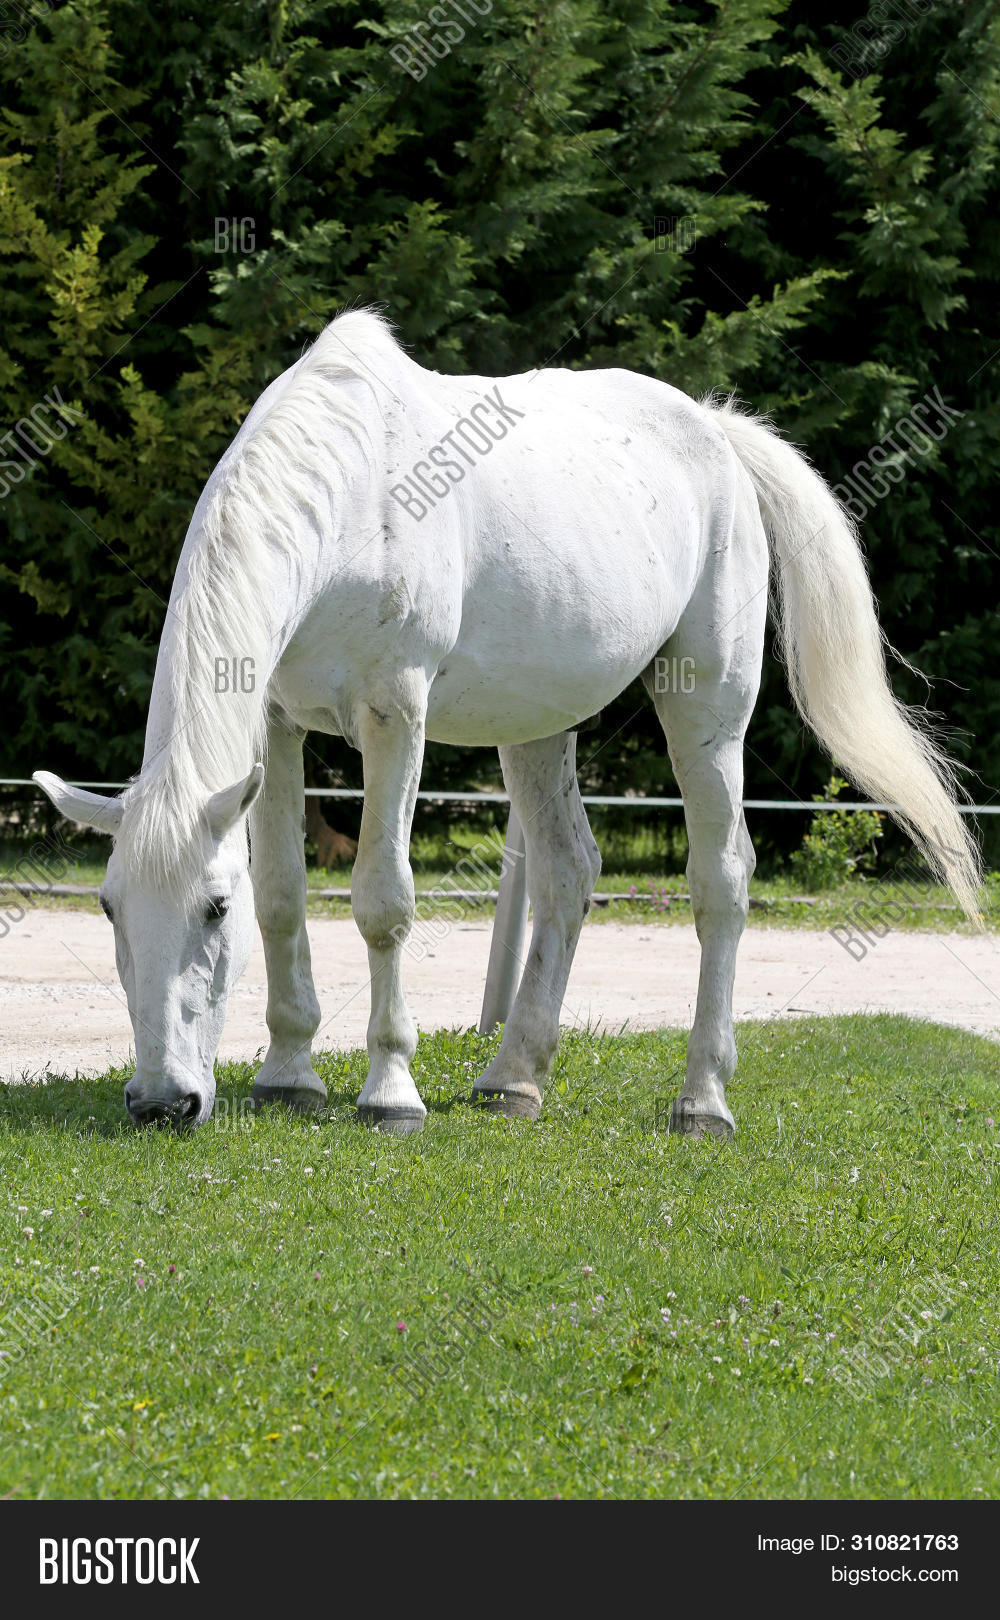 animal,background,barn,beautiful,beauty,bridle,close,color,country,countryside,creature,cute,domestic,eat,farm,farmland,feed,field,horse,landscape,lipizzaner,mane,mare,meadow,natural,nature,old,outdoor,paddock,pasture,provender,purebred,ranch,rural,scene,spring,stallion,stover,summer,white,white-haired,wild,wildlife,yarrow